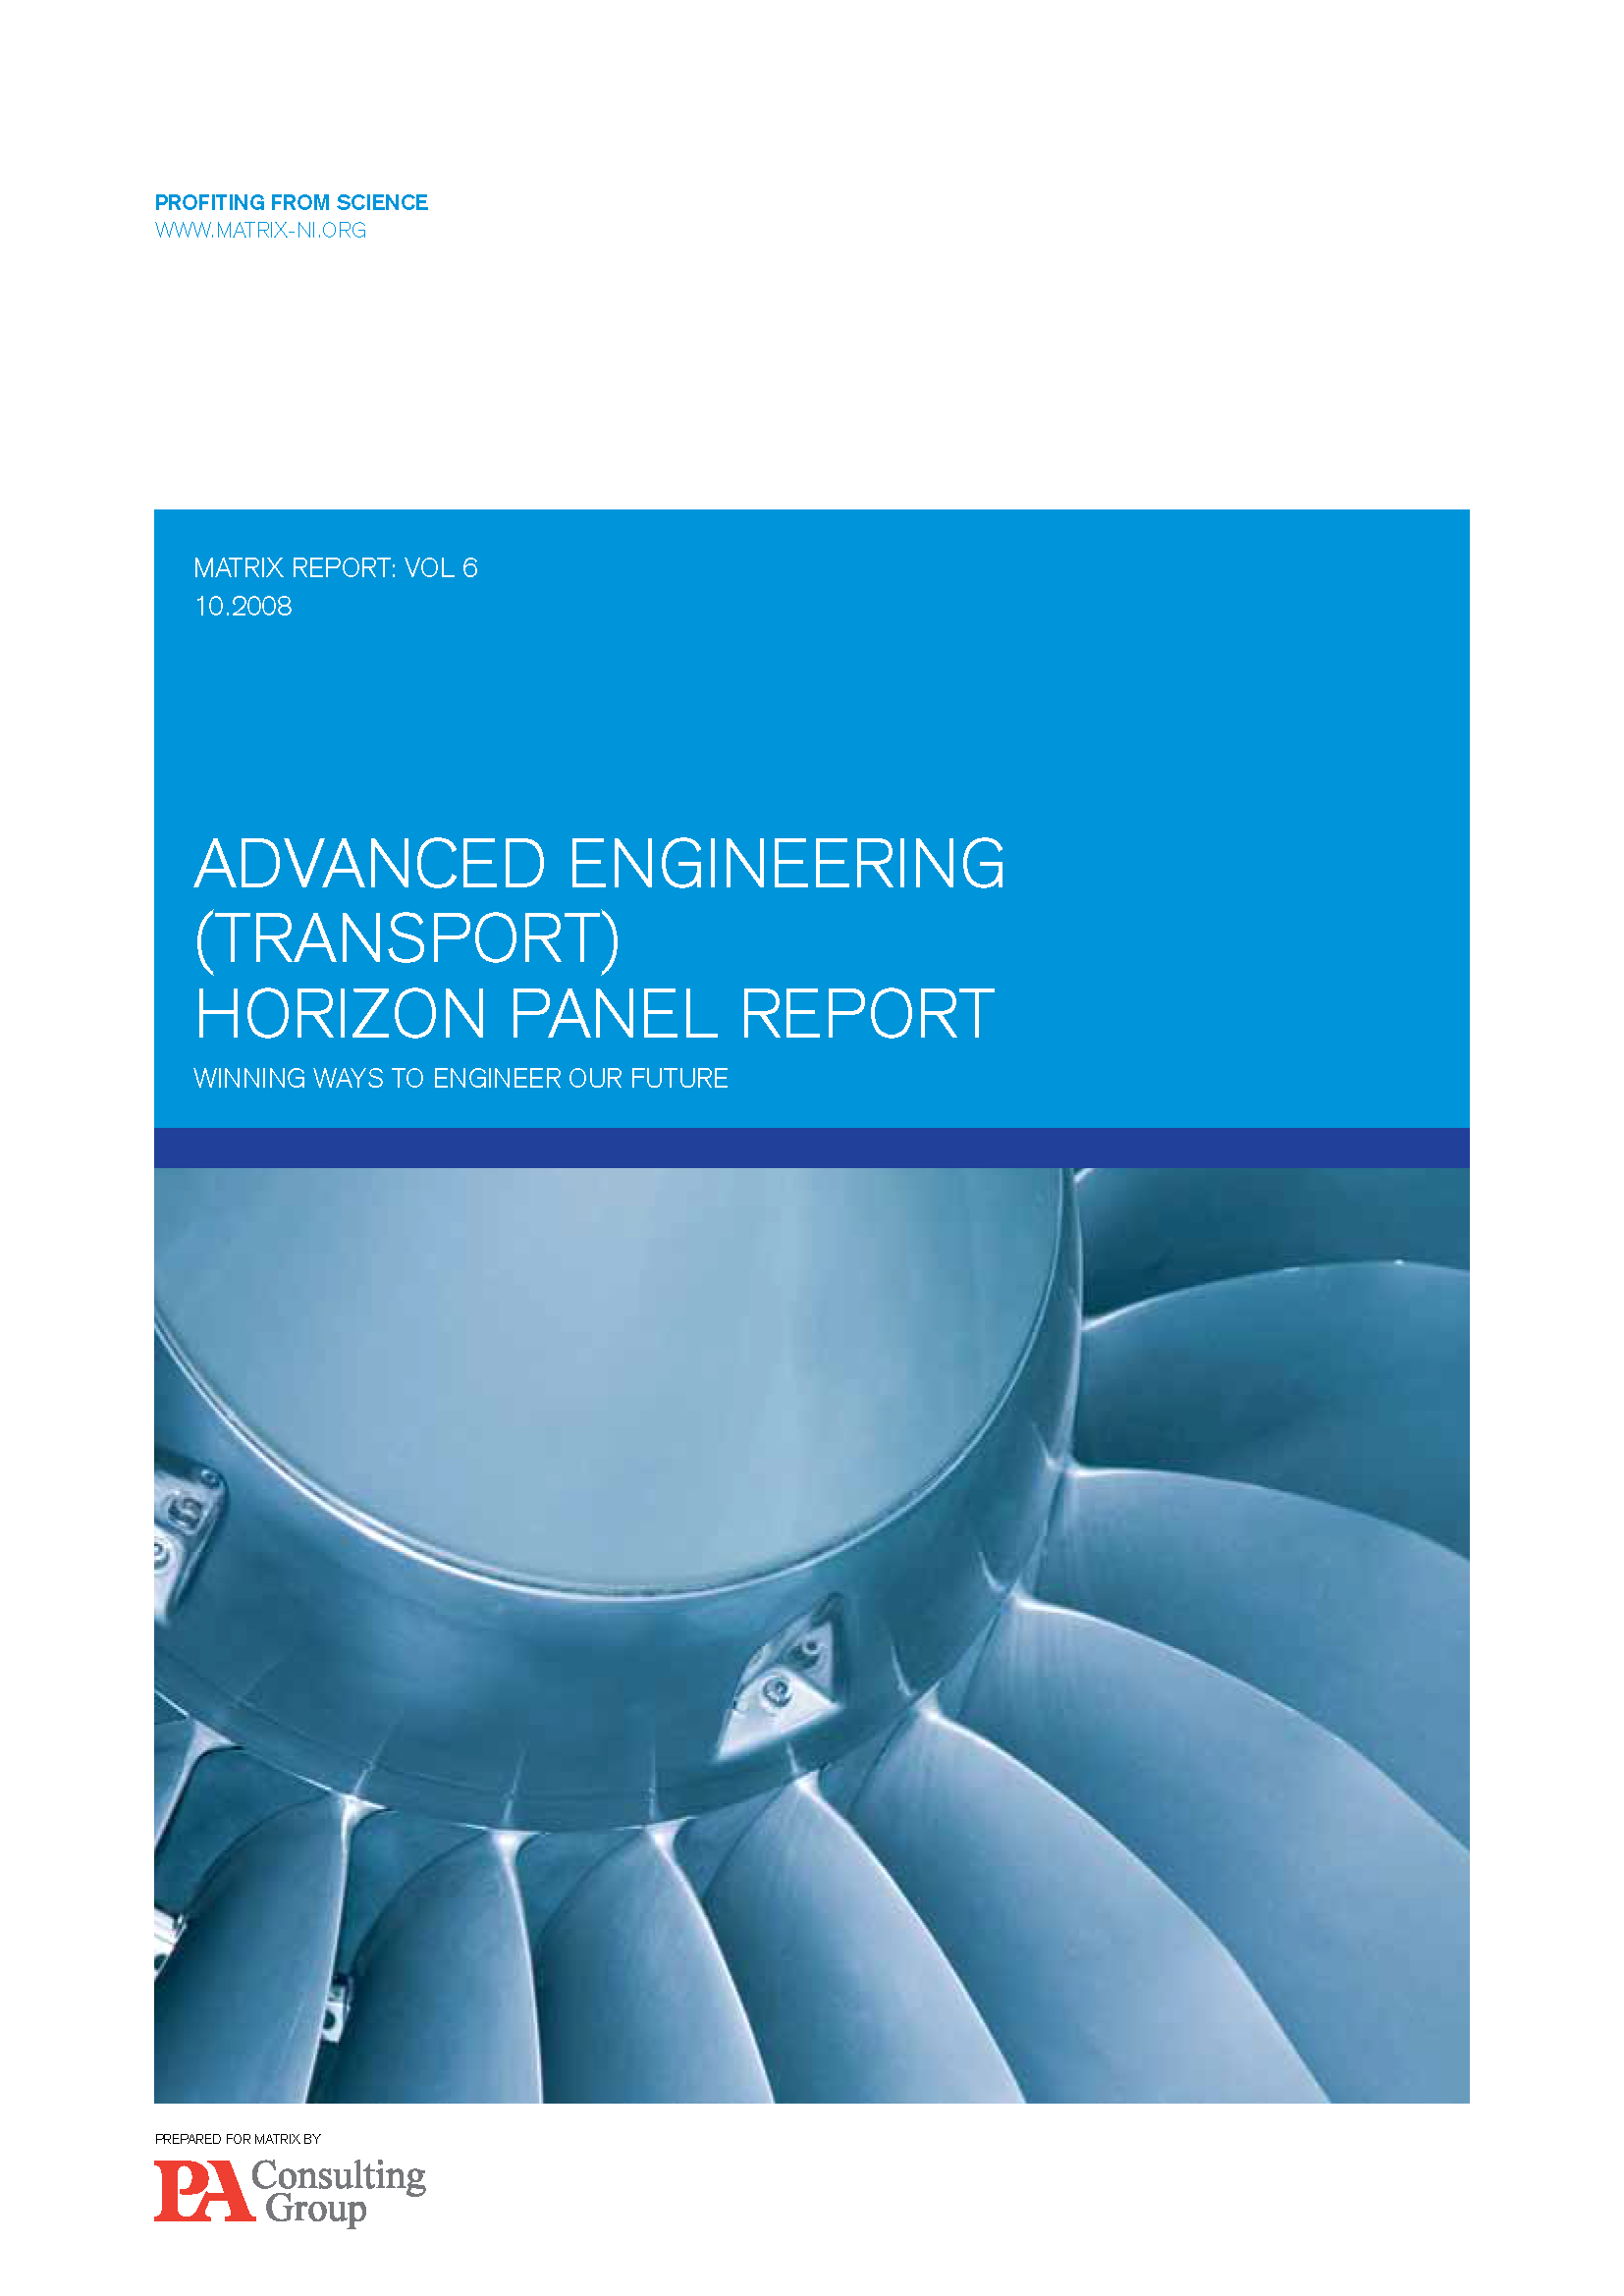 Advanced Engineering (Transport) Report 2008